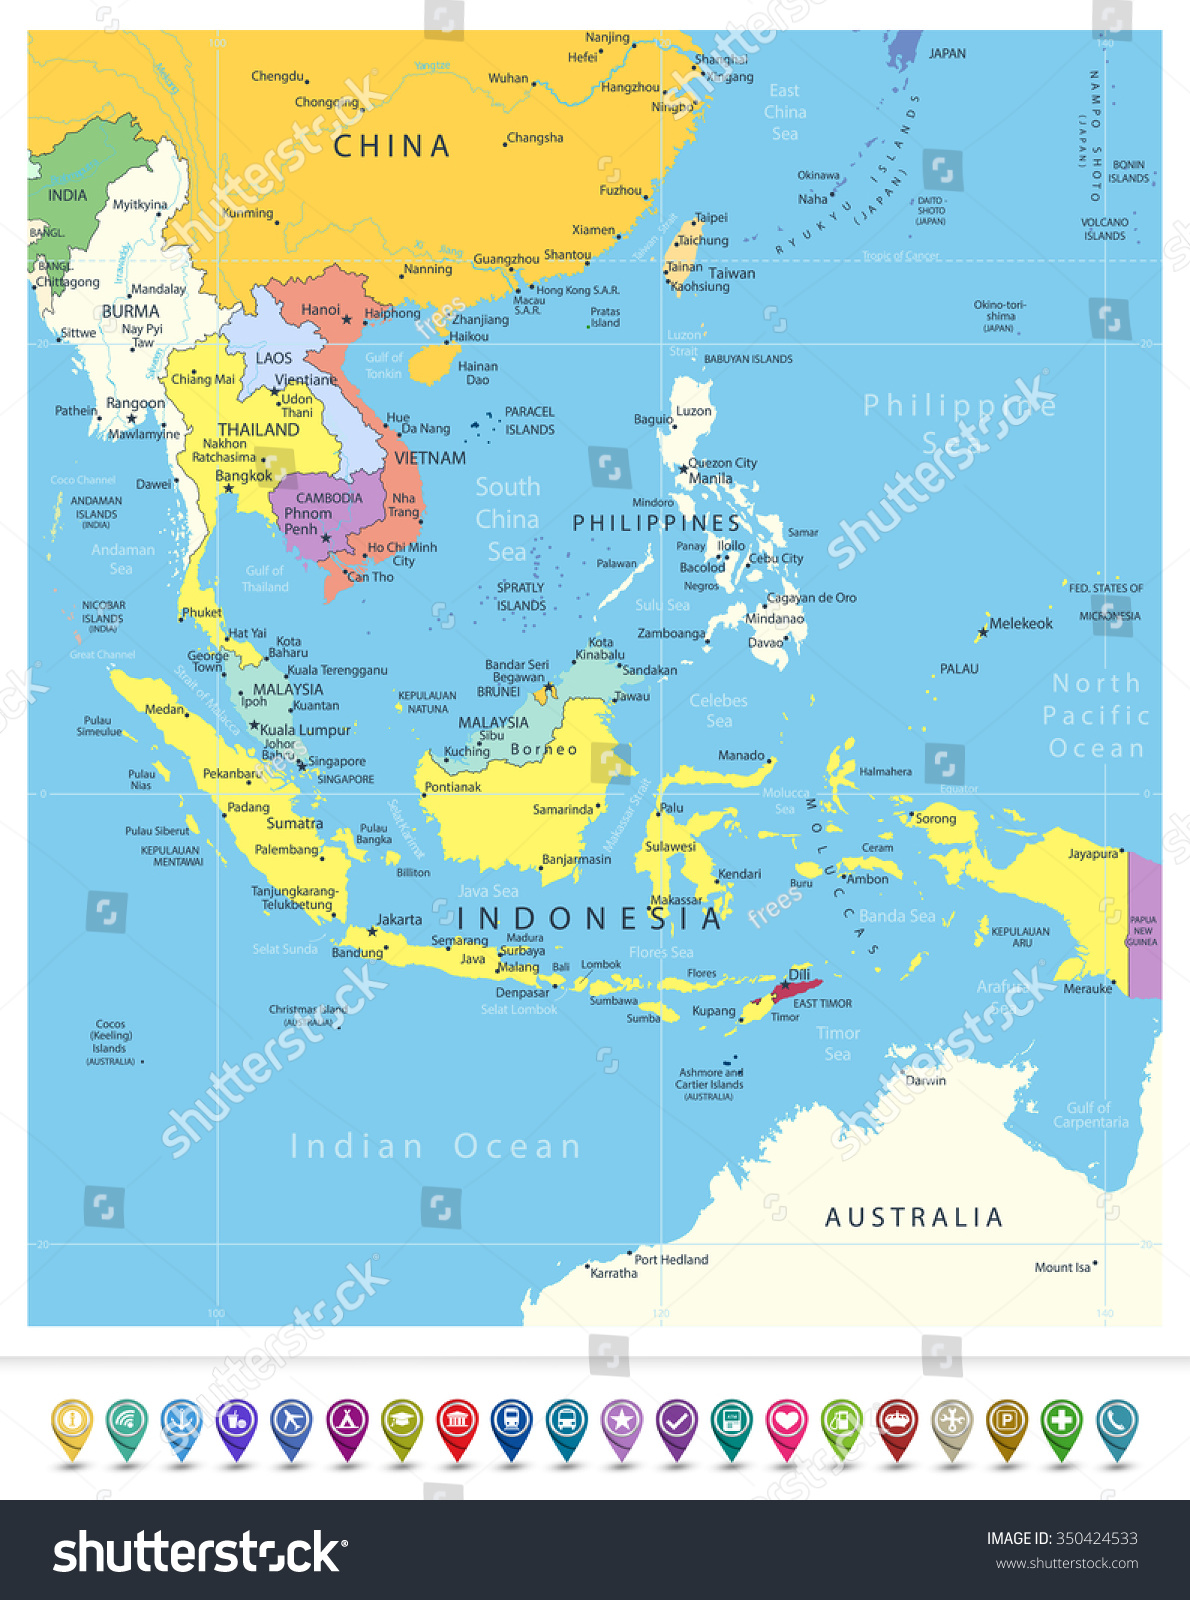 southeast asia political map and navigation icons all elements are separated in editable layers clearly